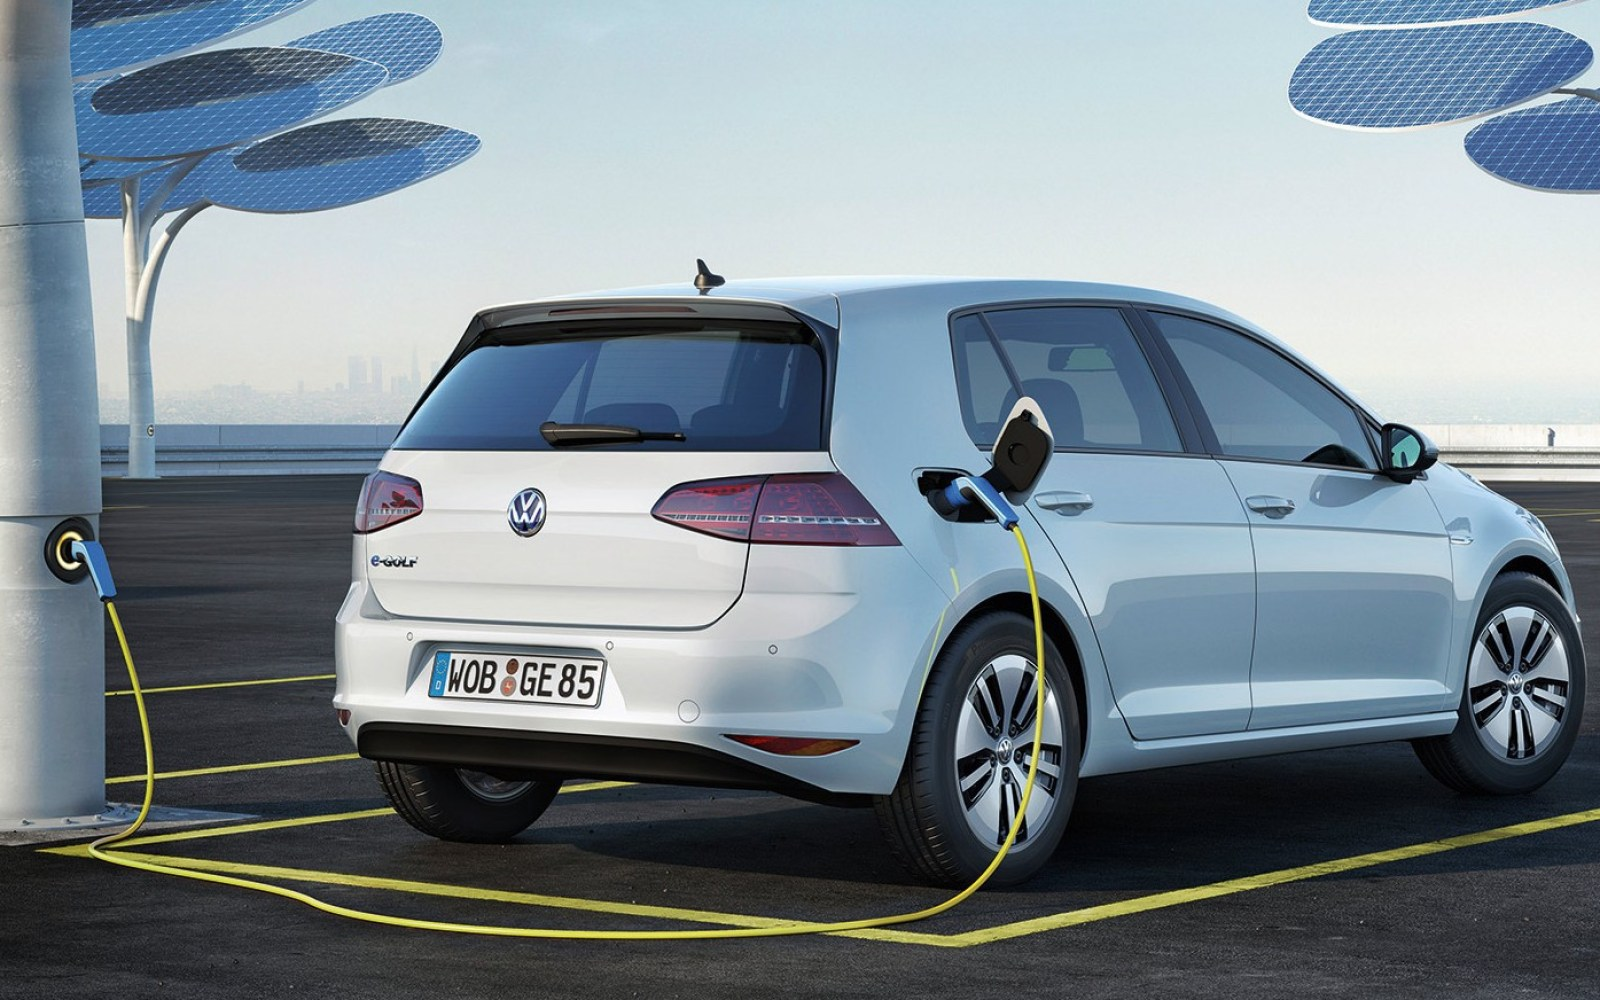 The Next Generation All Electric Vw E Golf Will Have 186 Miles Of